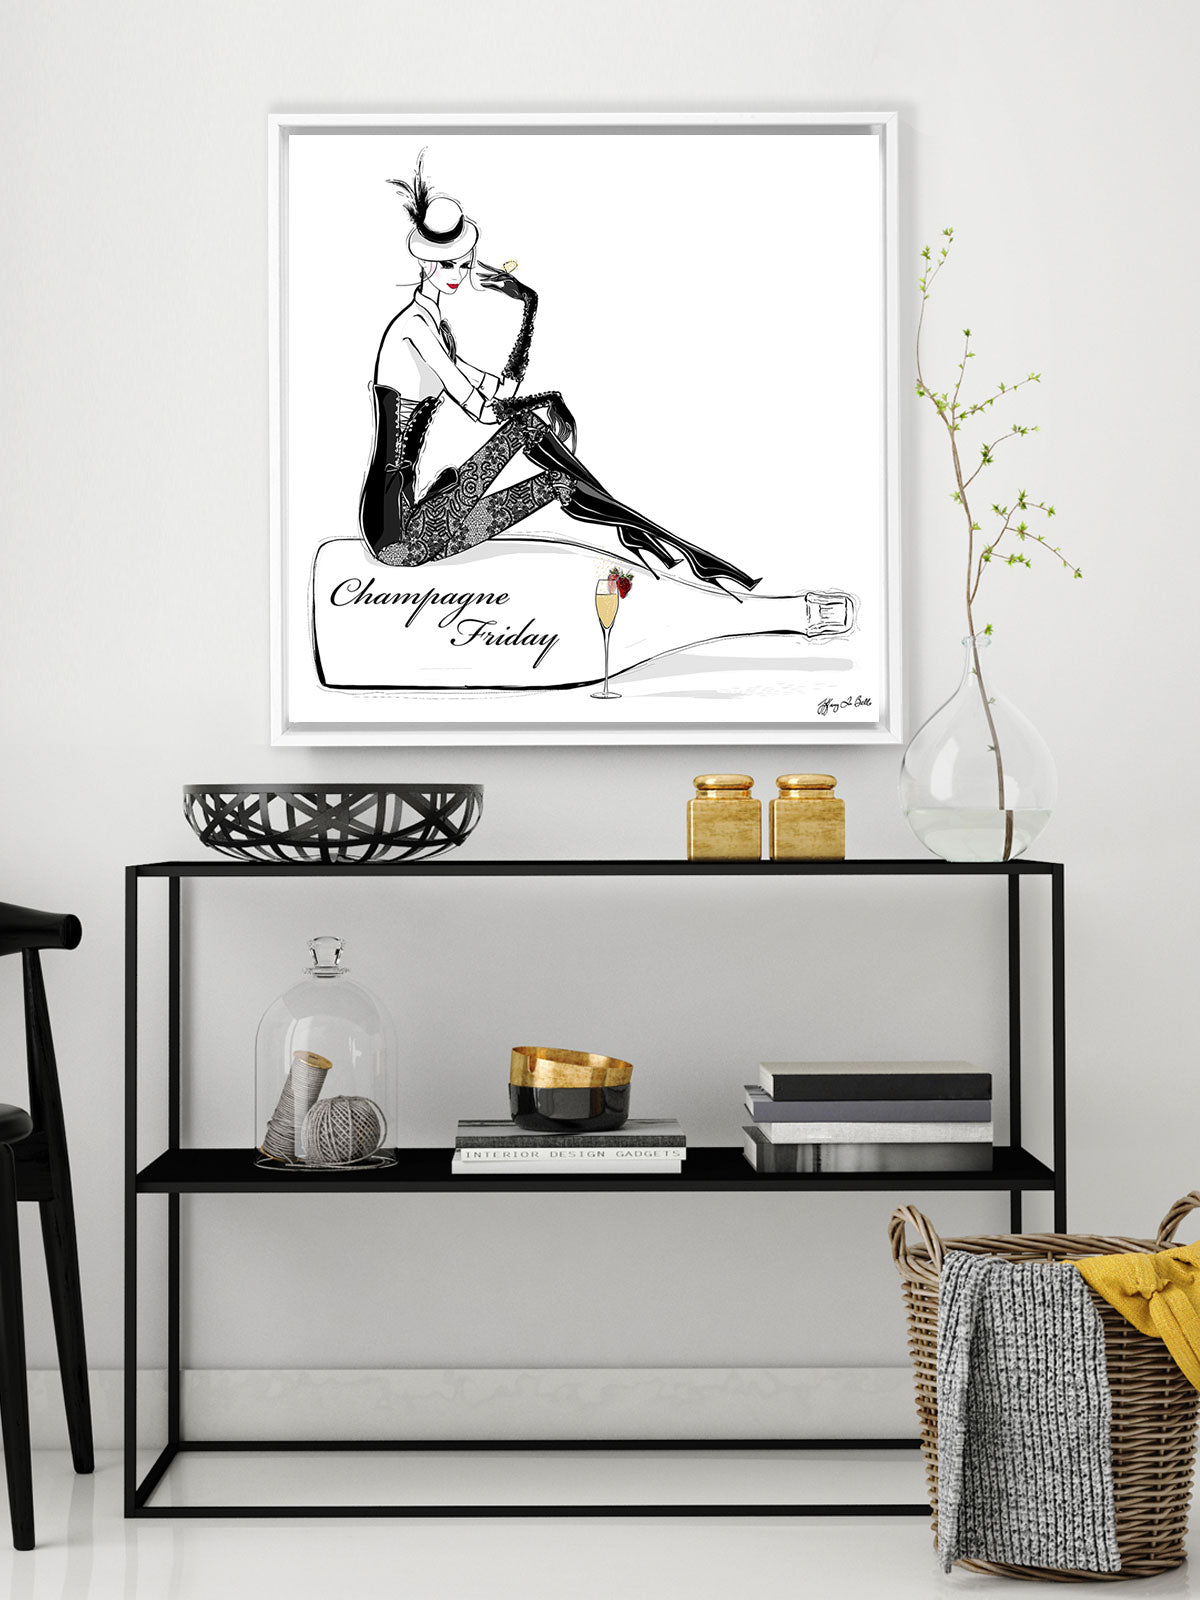 Champagne Friday with Strawberries - Illustration - Canvas Gallery Print - Unframed or Framed - Tiffany La Belle